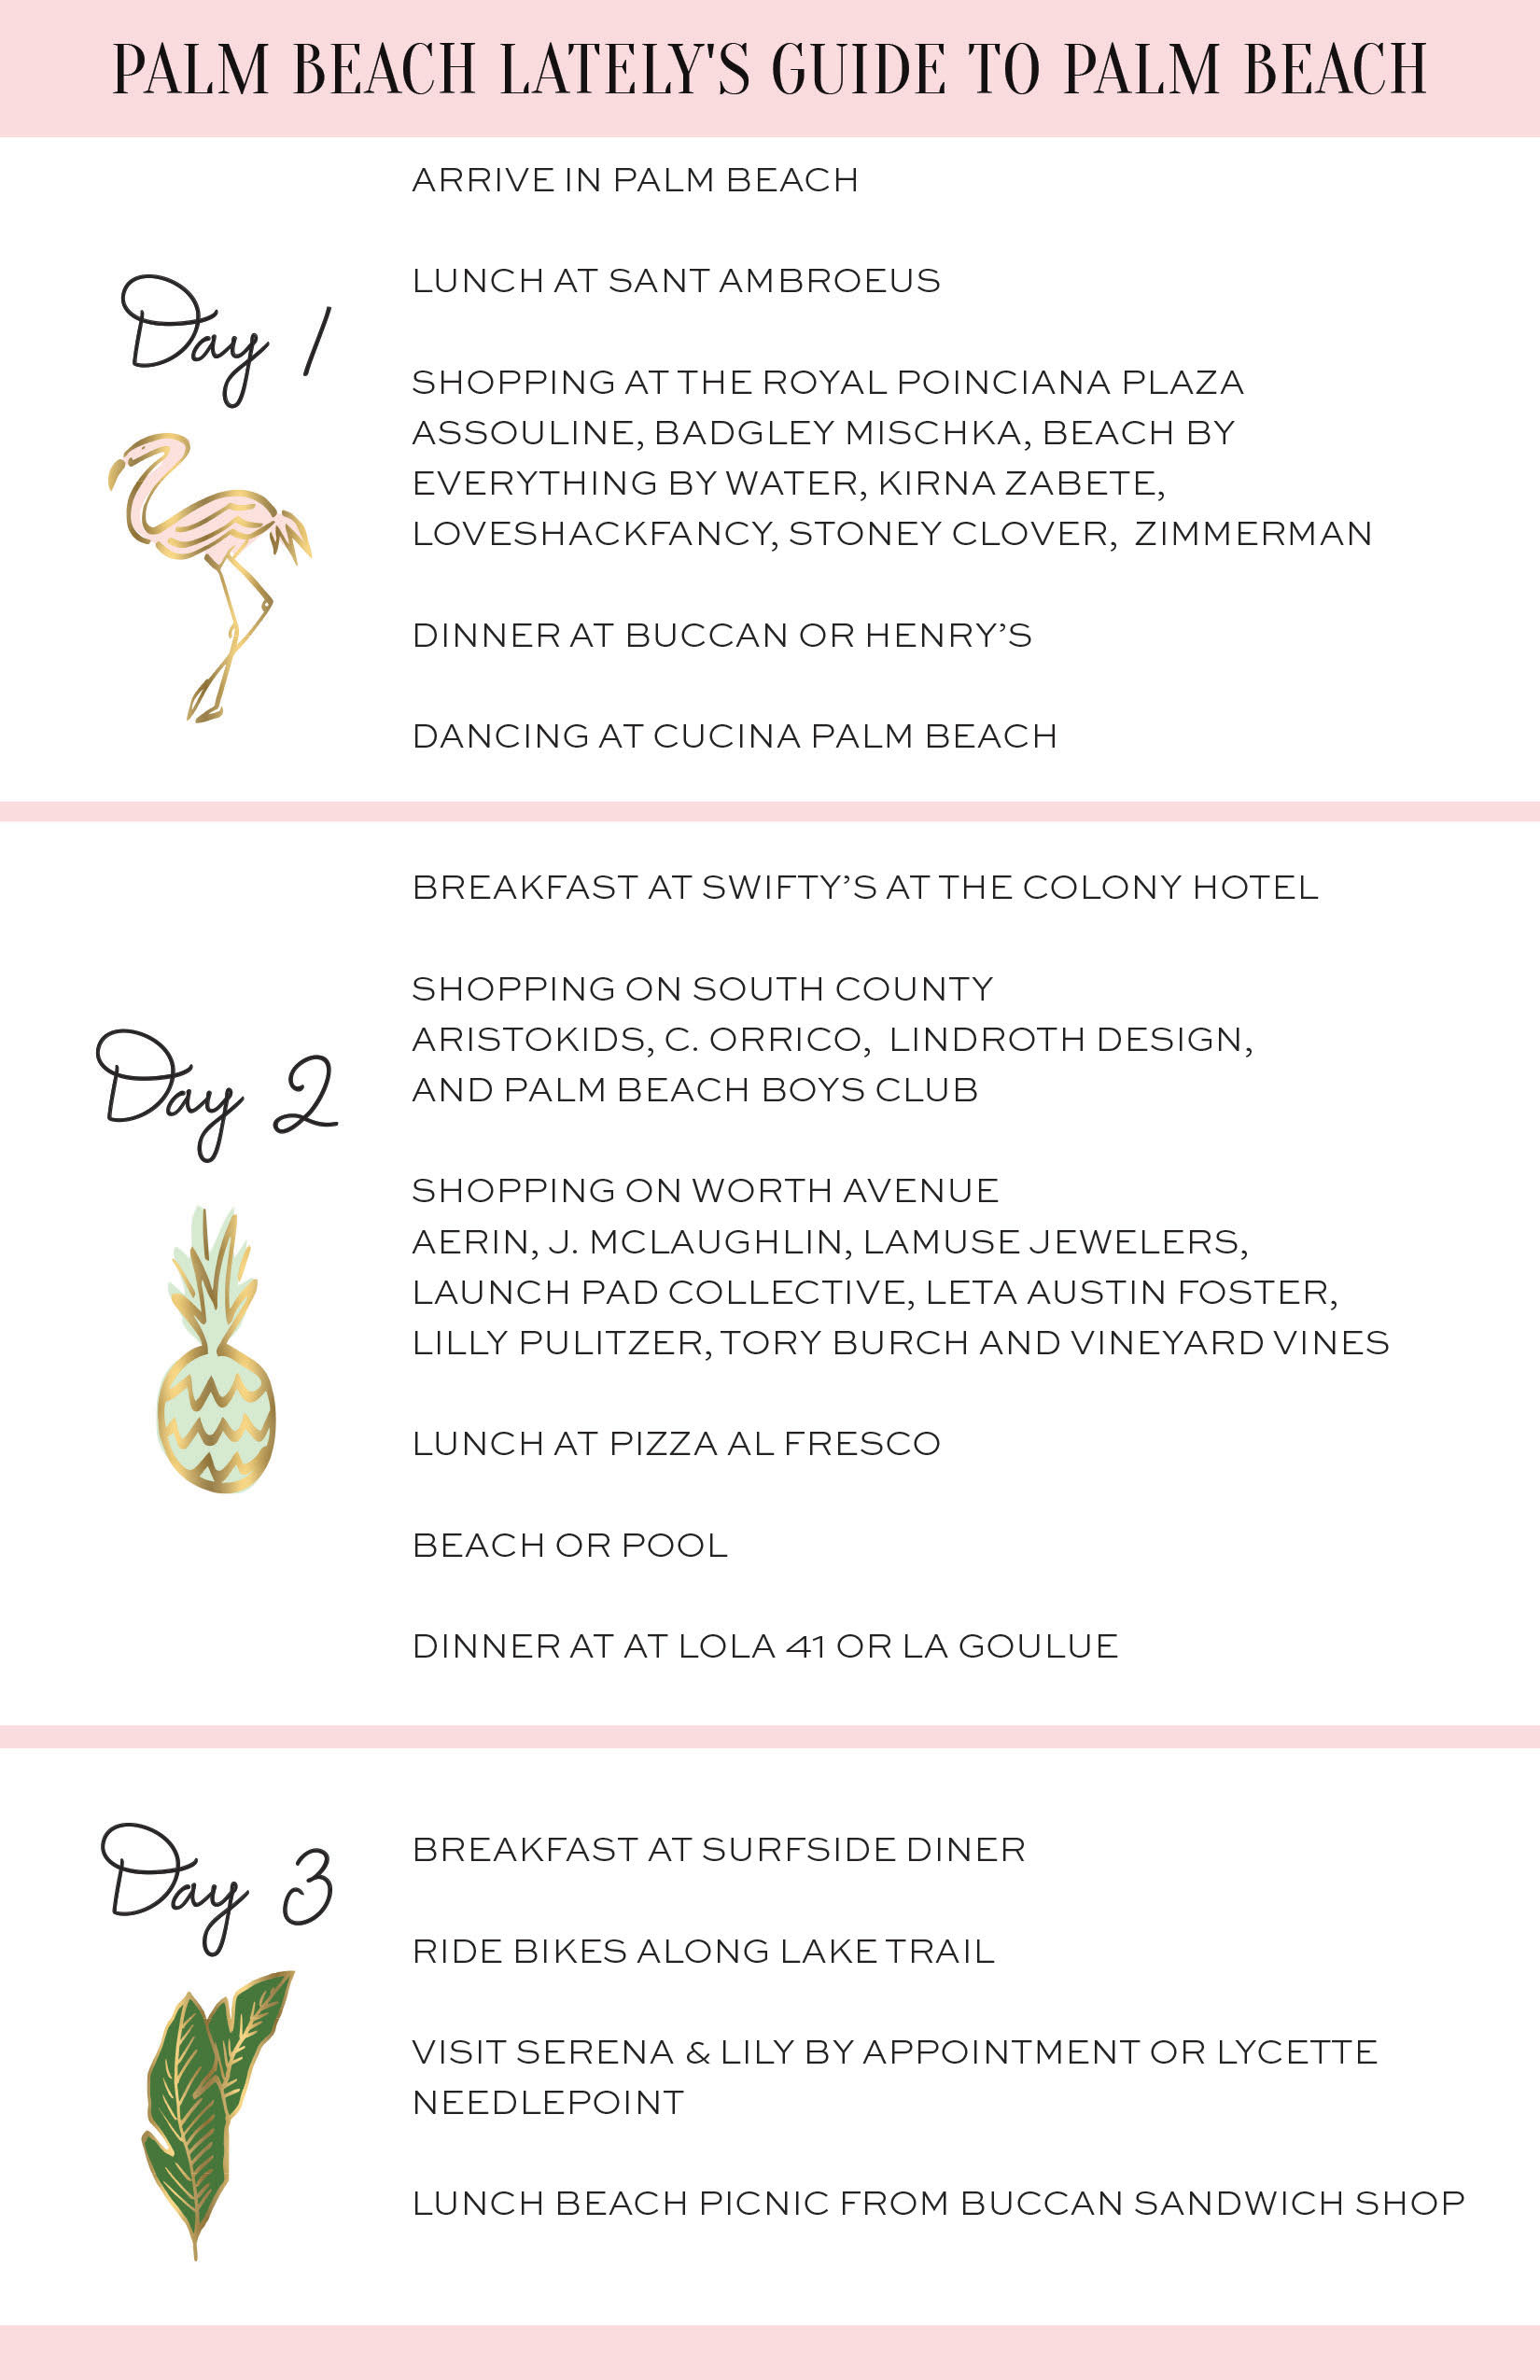 Palm Beach Lately's Guide to Palm Beach